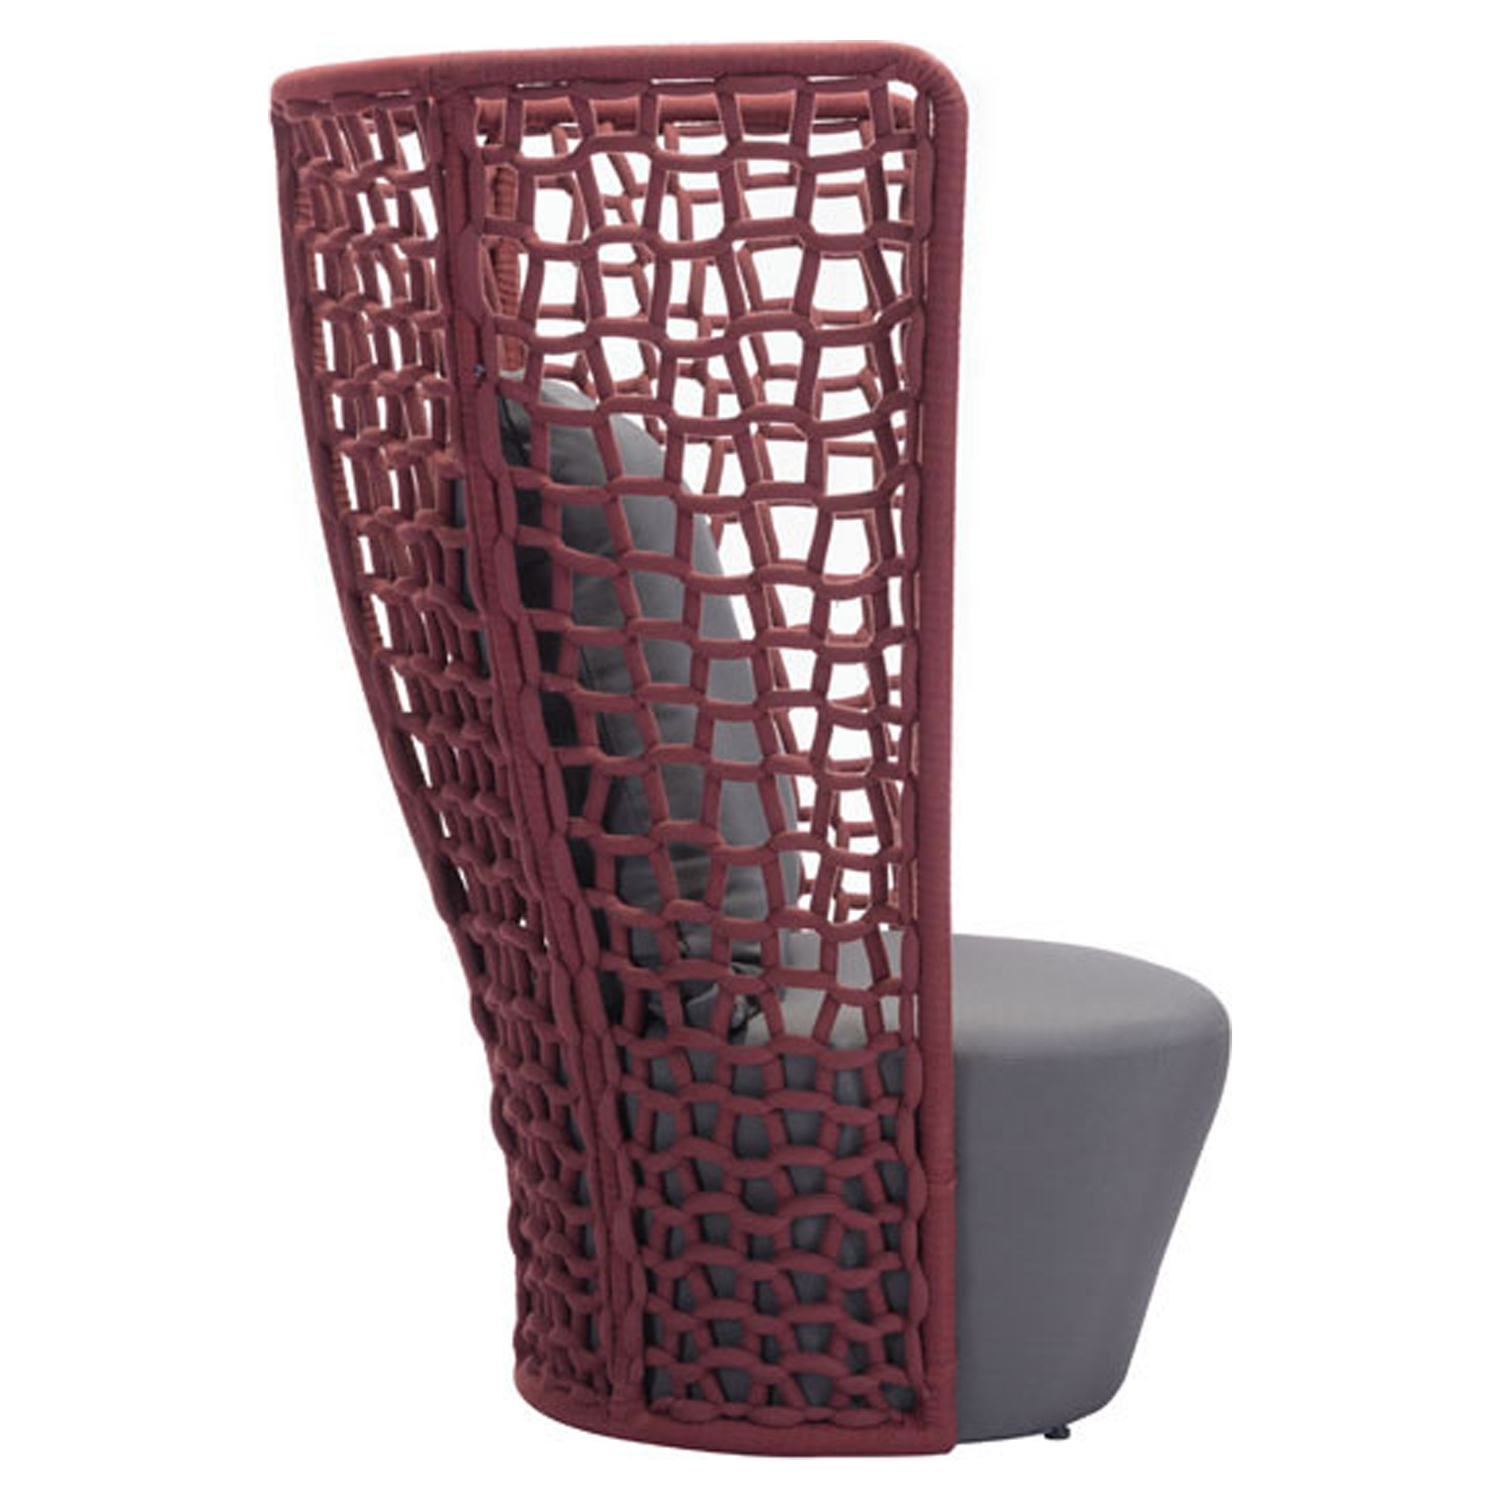 Faye Bay Beach Chair - Cranberry and Gray - ZM-703579